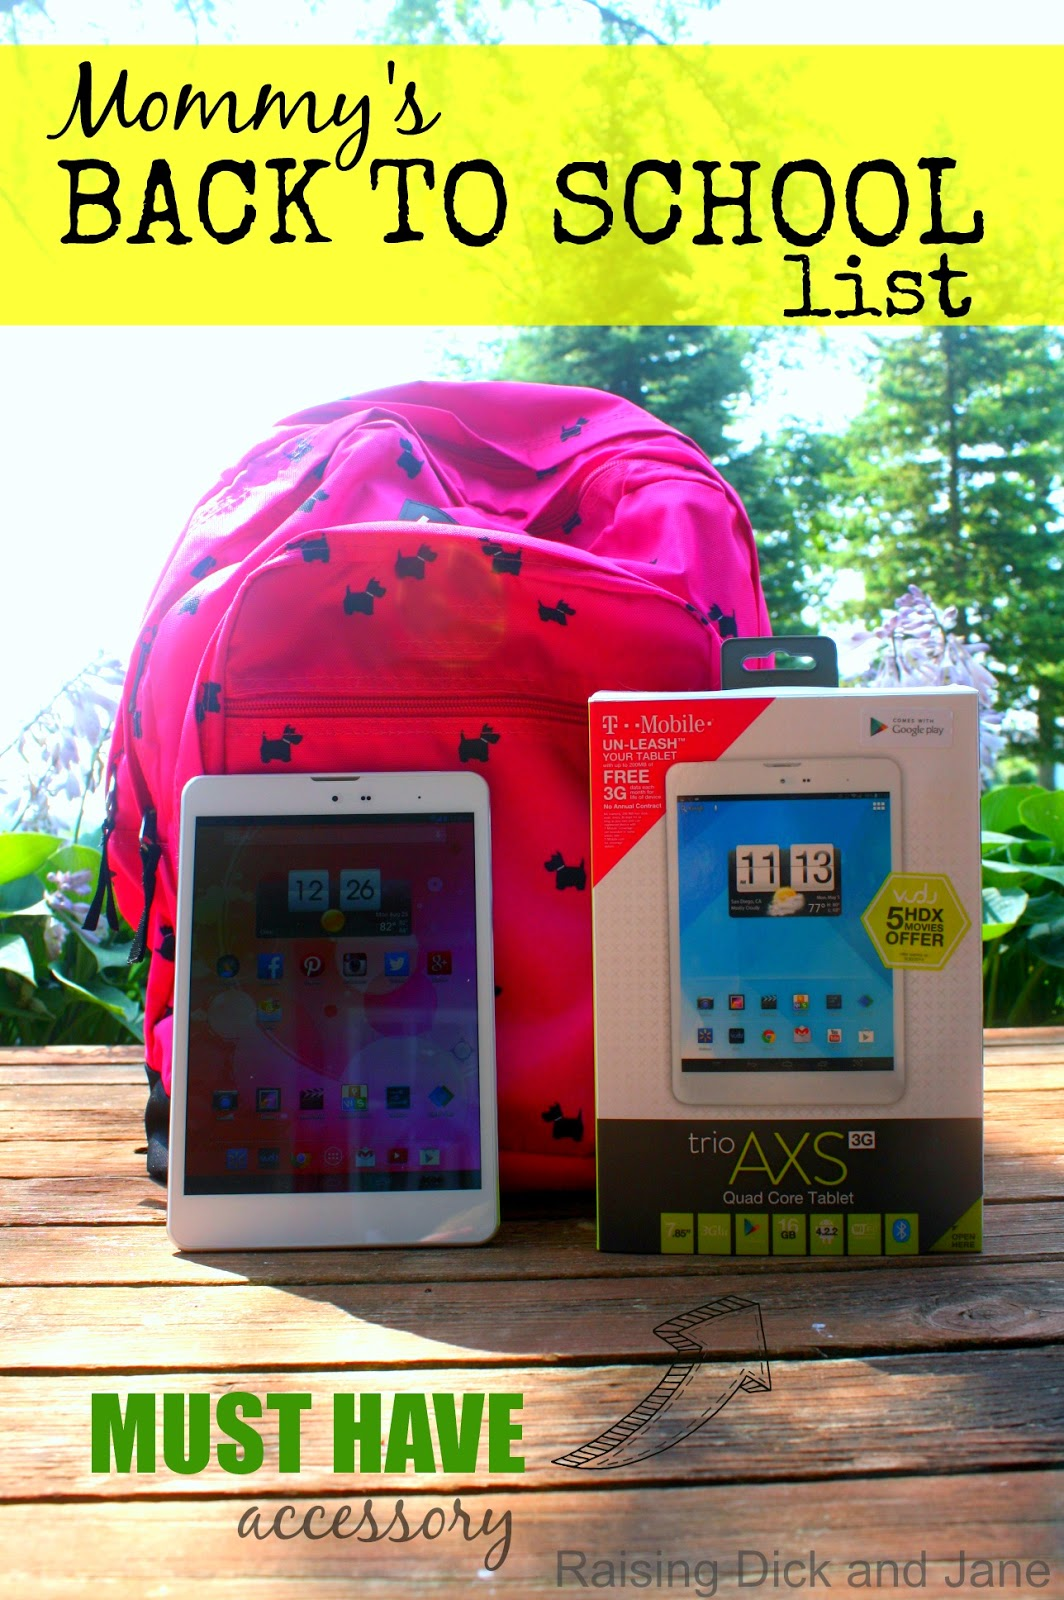 Mommy's back to school list #TabletTrio #CollectiveBias #shop